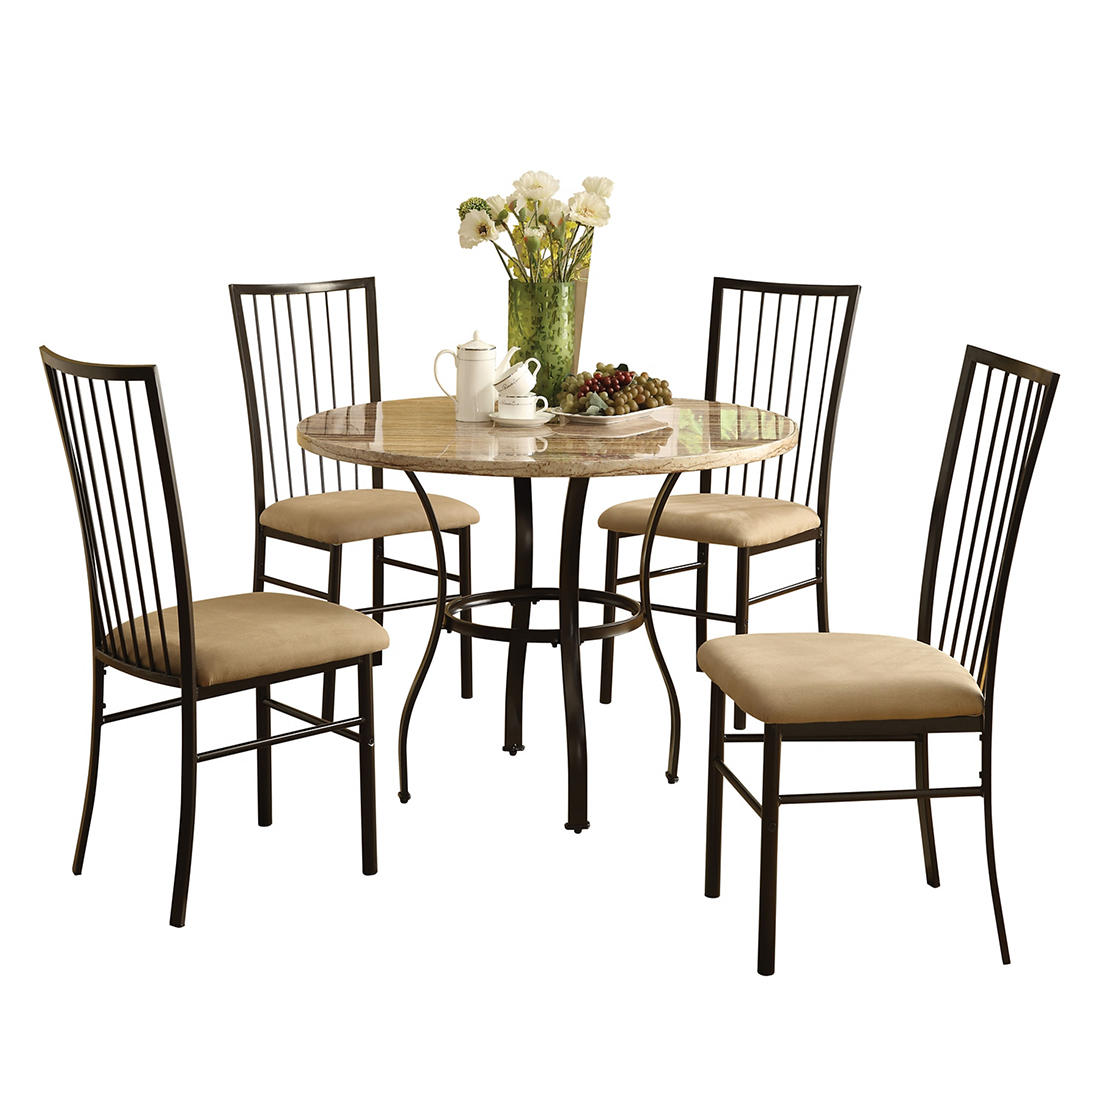 Acme Darell 5 Pc Faux Marble Dining Set Beige